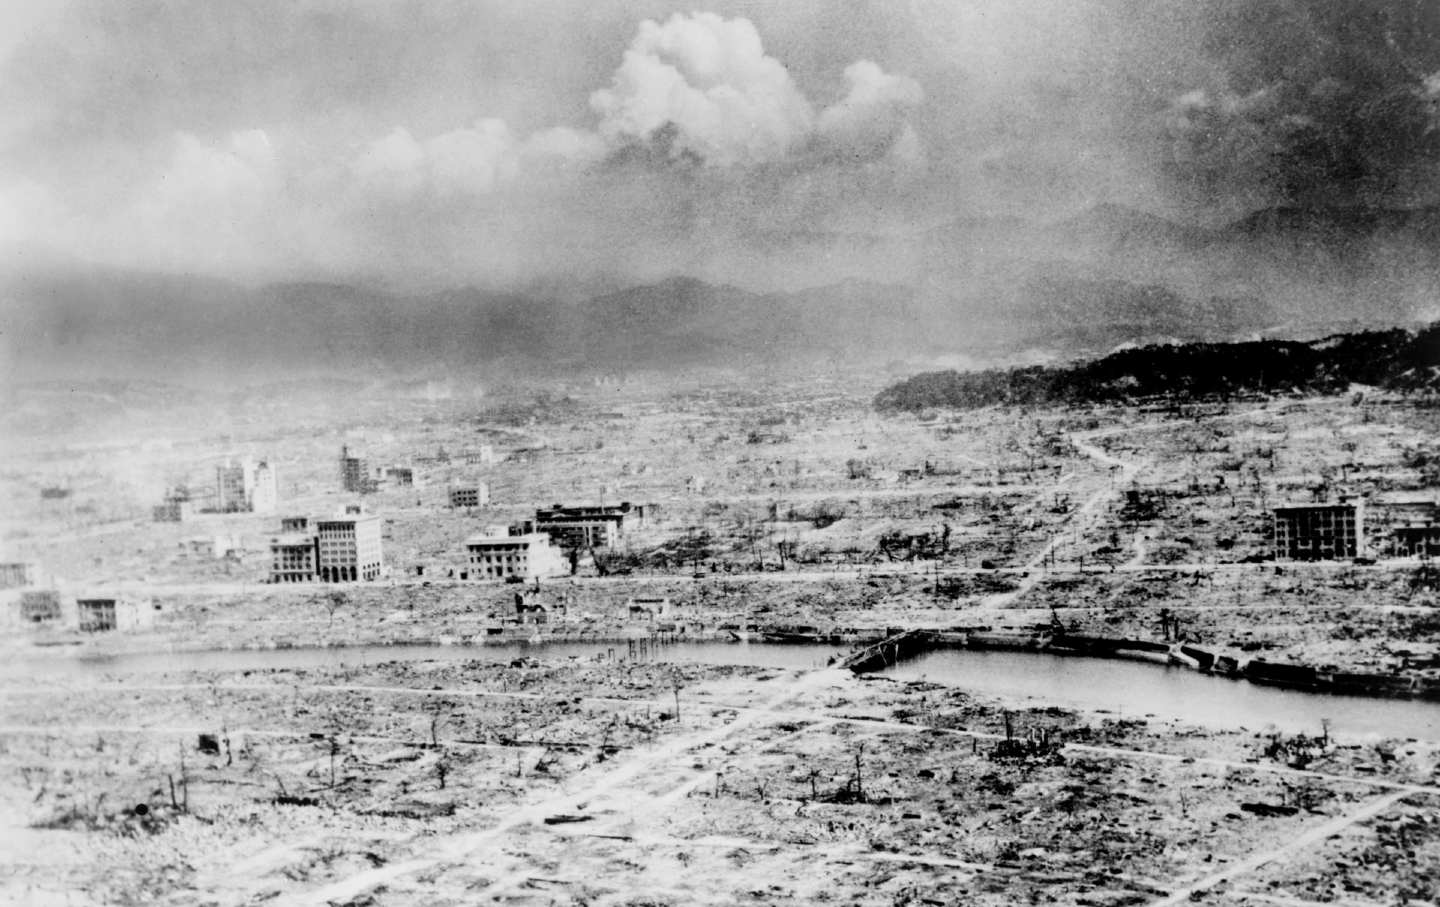 How a News Report on Hiroshima Helped Prevent Nuclear War